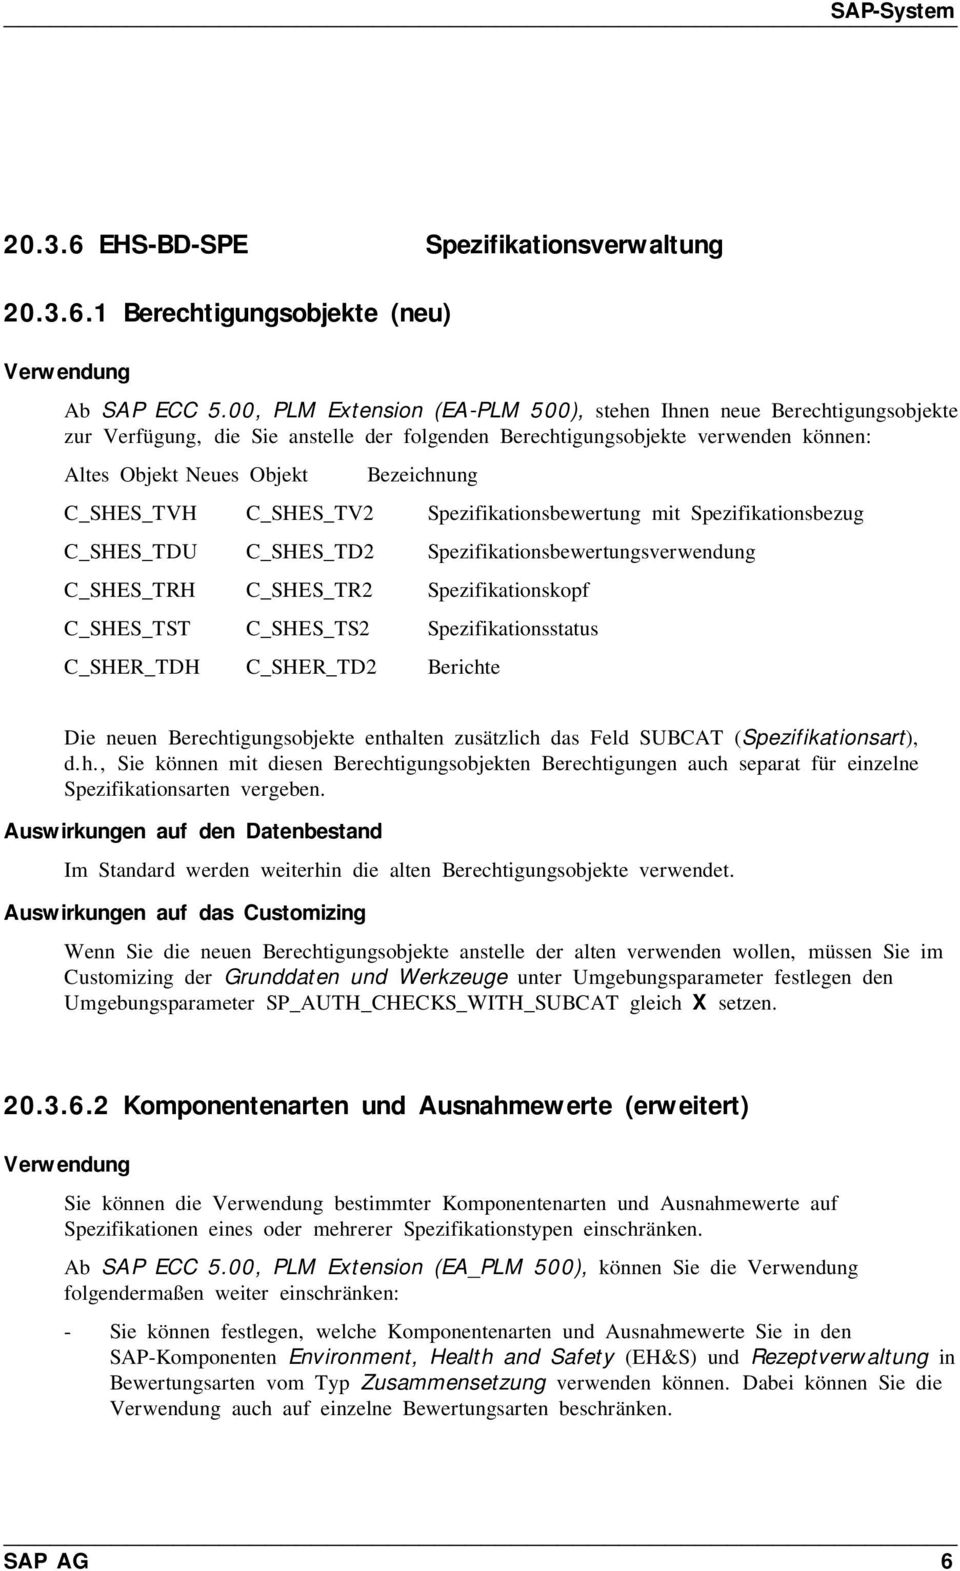 C_SHES_TVH C_SHES_TV2 Spezifikationsbewertung mit Spezifikationsbezug C_SHES_TDU C_SHES_TD2 Spezifikationsbewertungsverwendung C_SHES_TRH C_SHES_TR2 Spezifikationskopf C_SHES_TST C_SHES_TS2